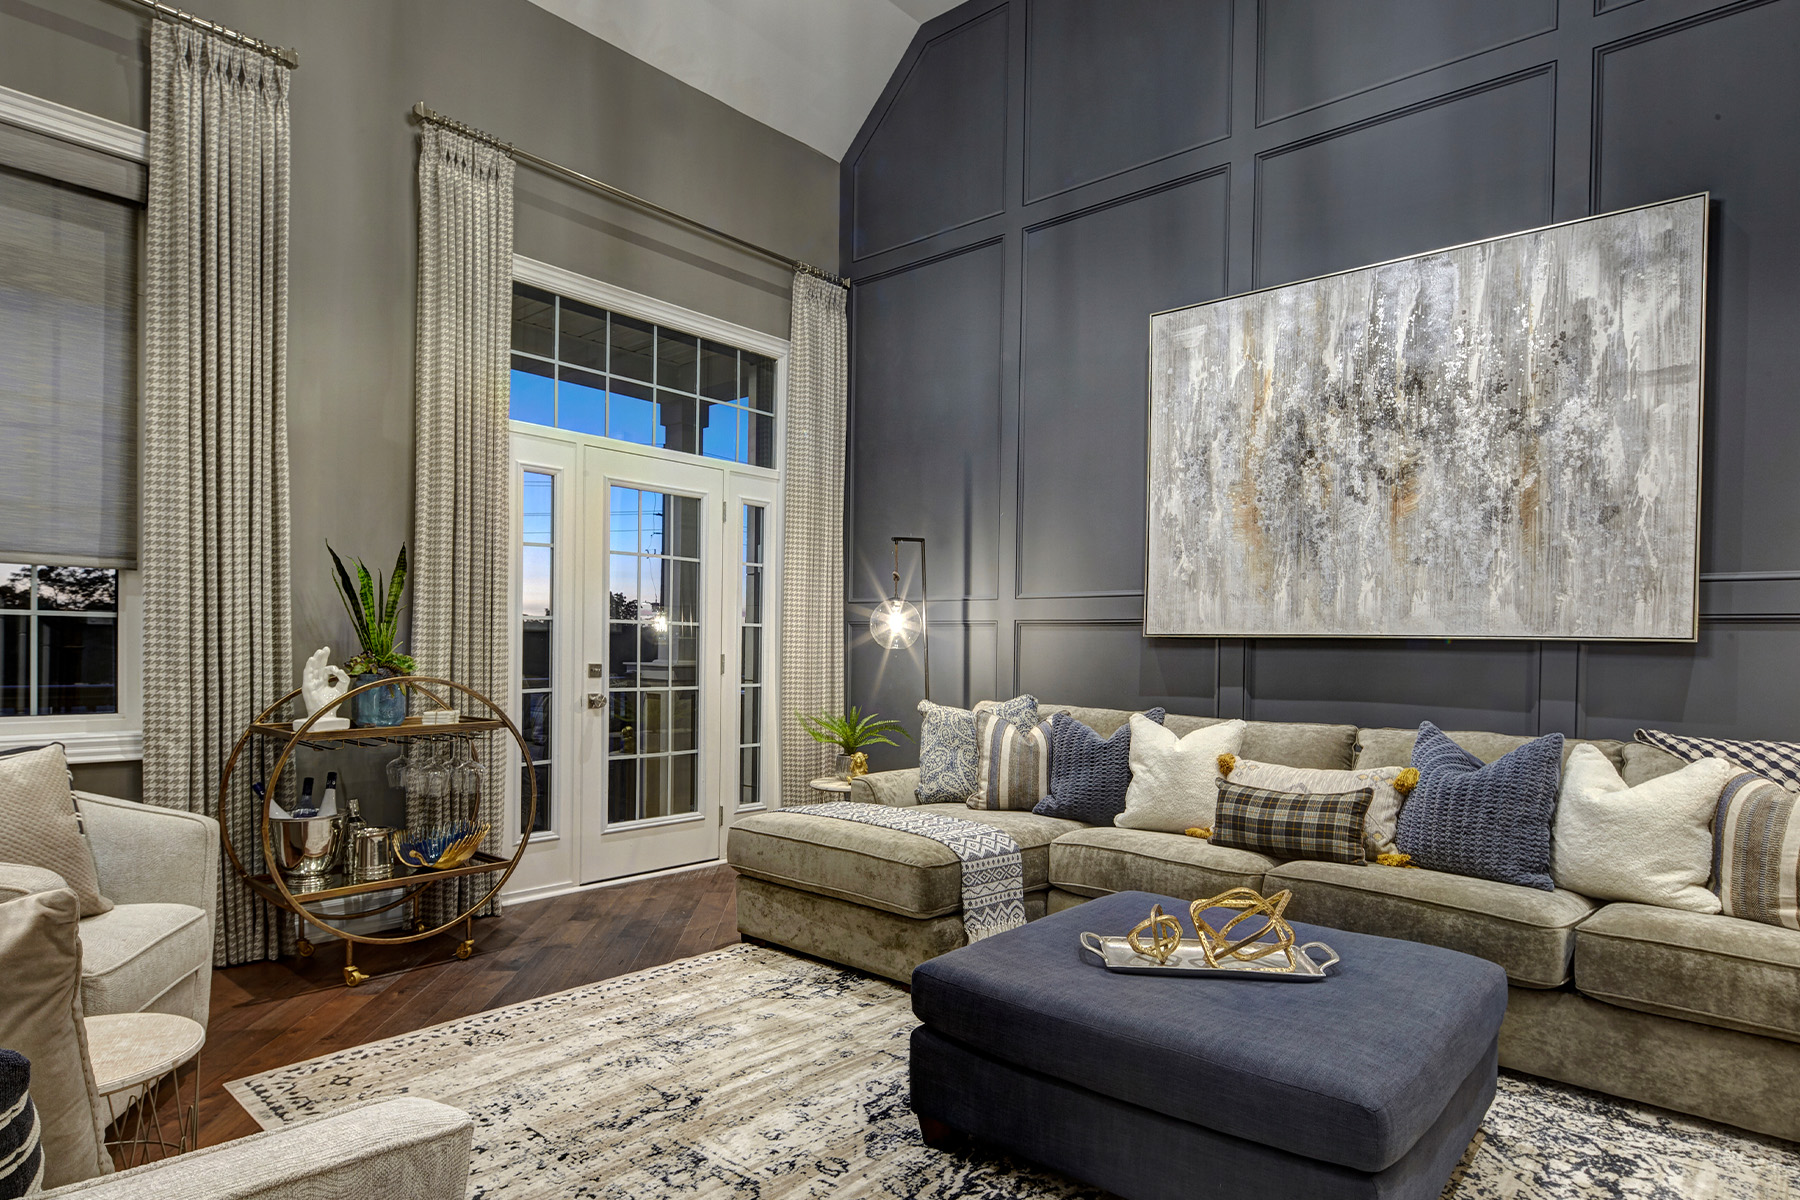 Kingsley Plan Interior Others at Upper Joshua Creek in Oakville Ontario by Mattamy Homes